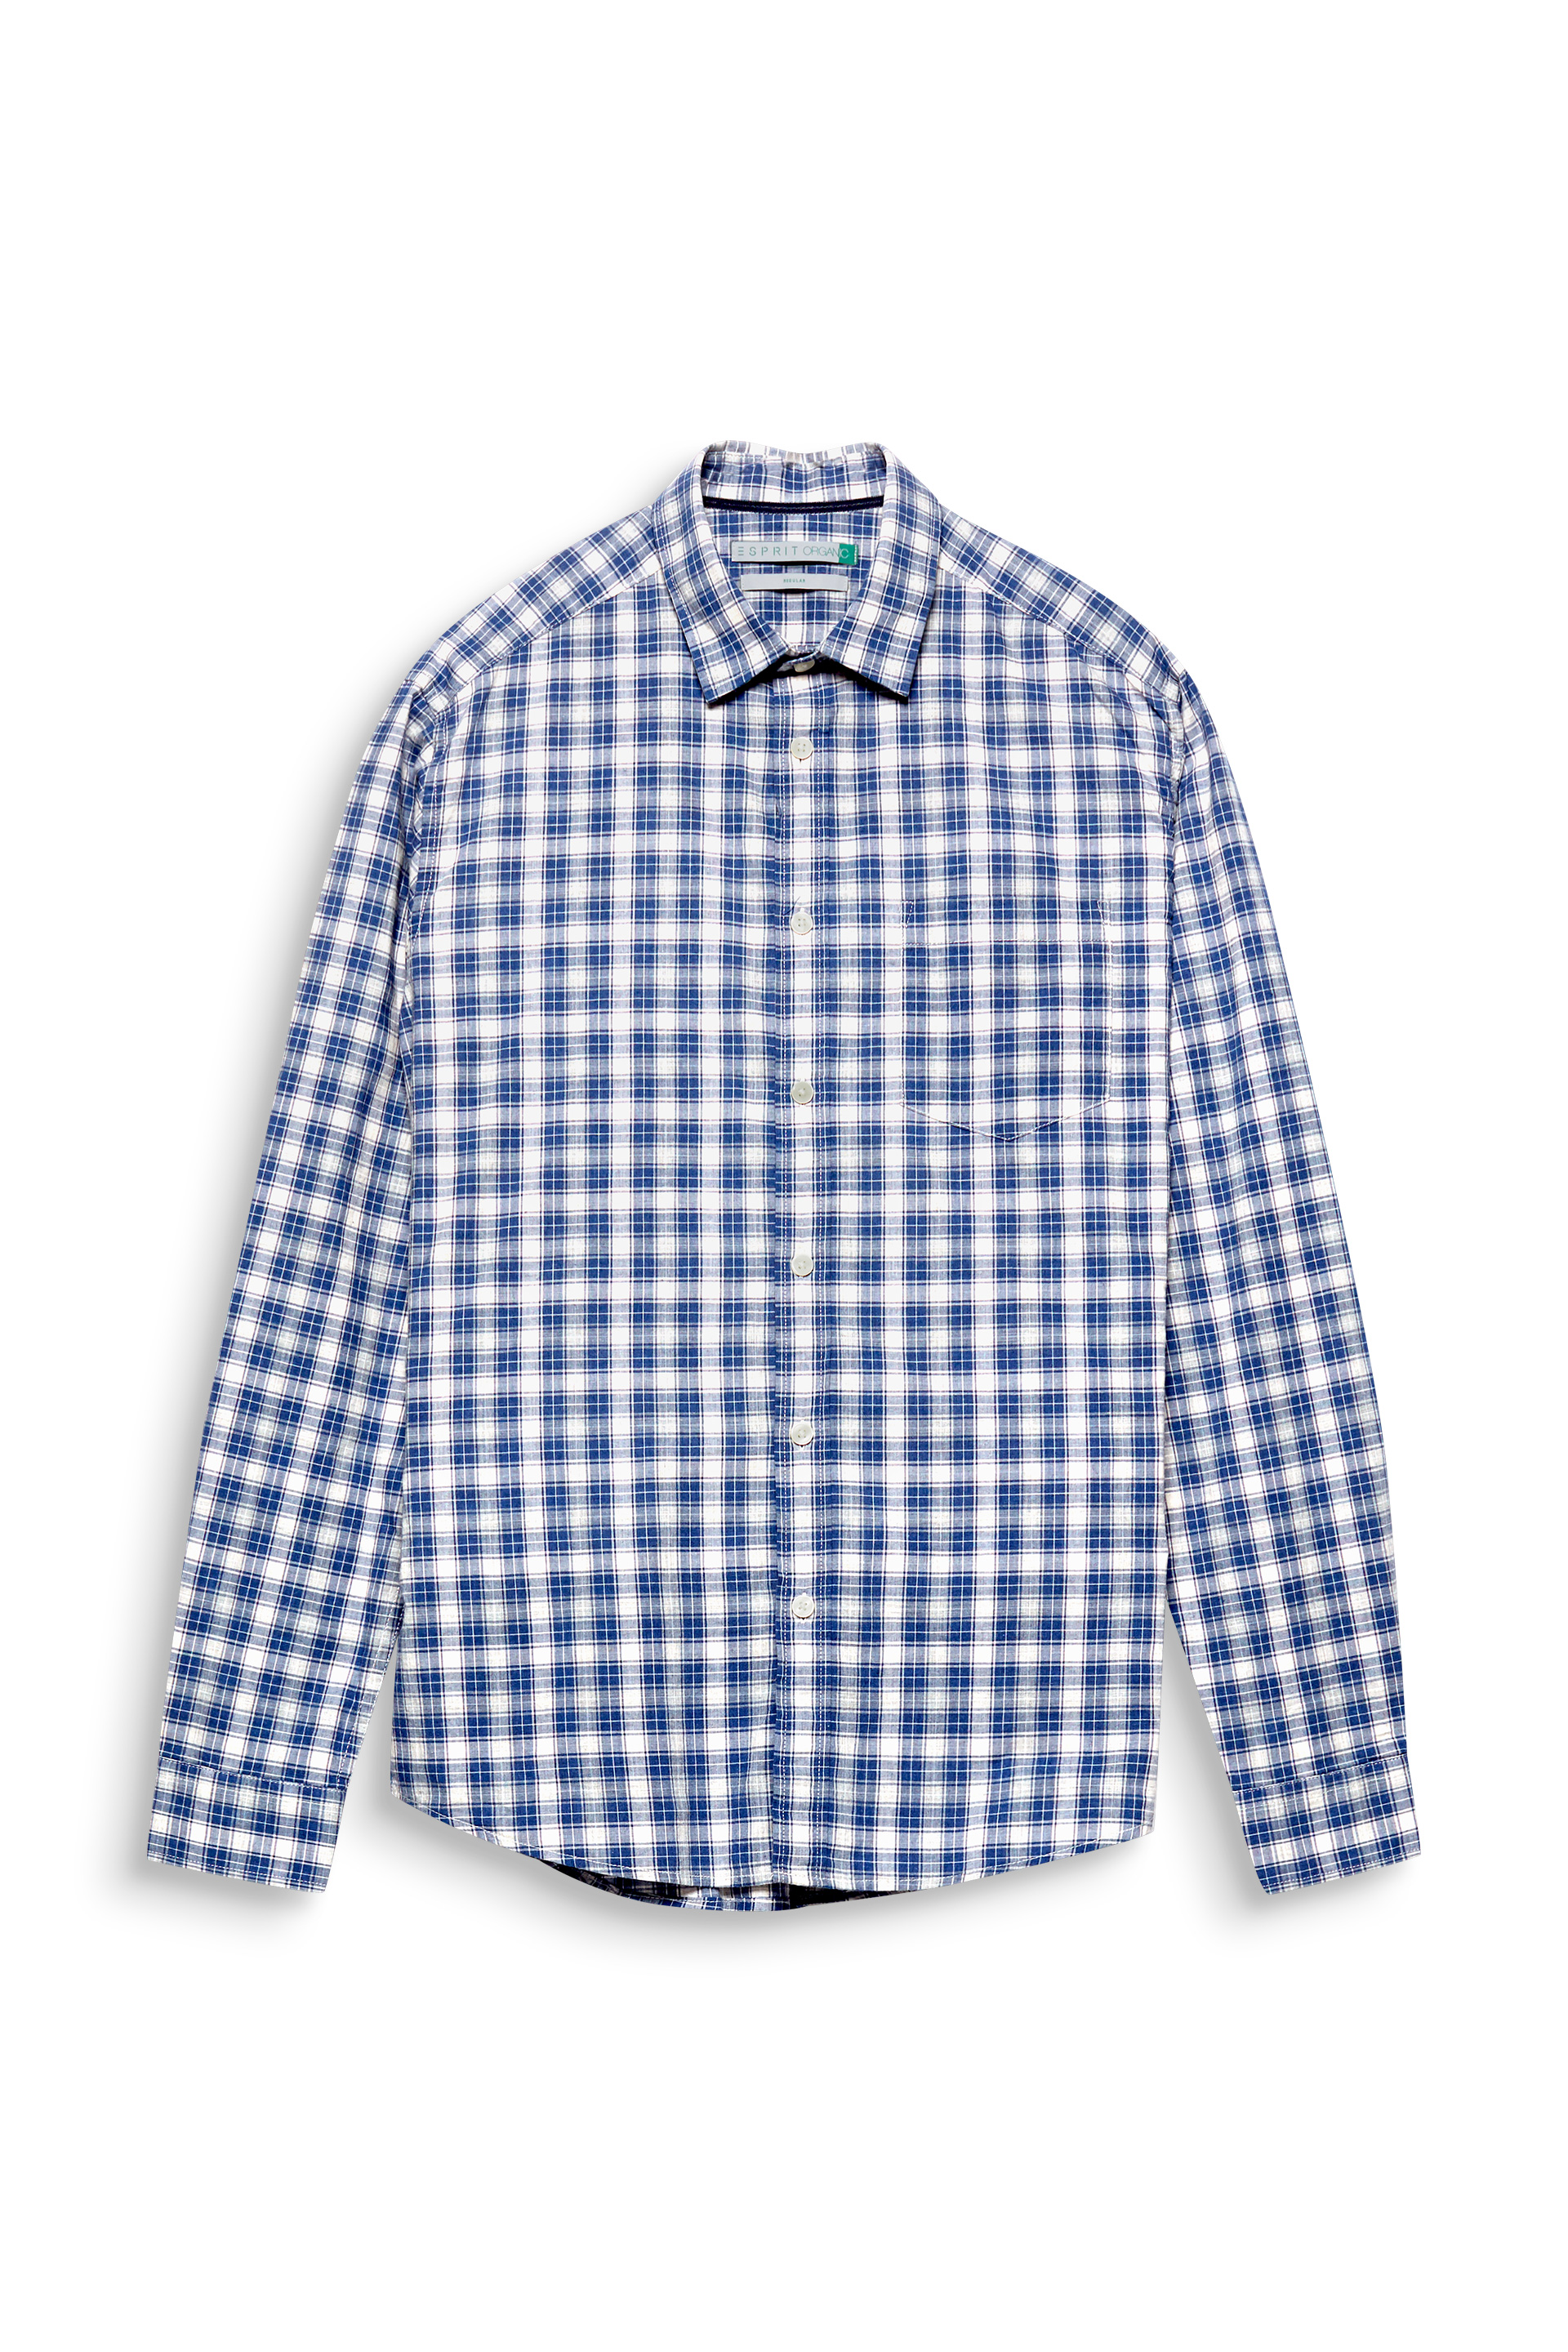 Esprit BLUE 430 Long Sleeve Check Shirt In Organic Cotton